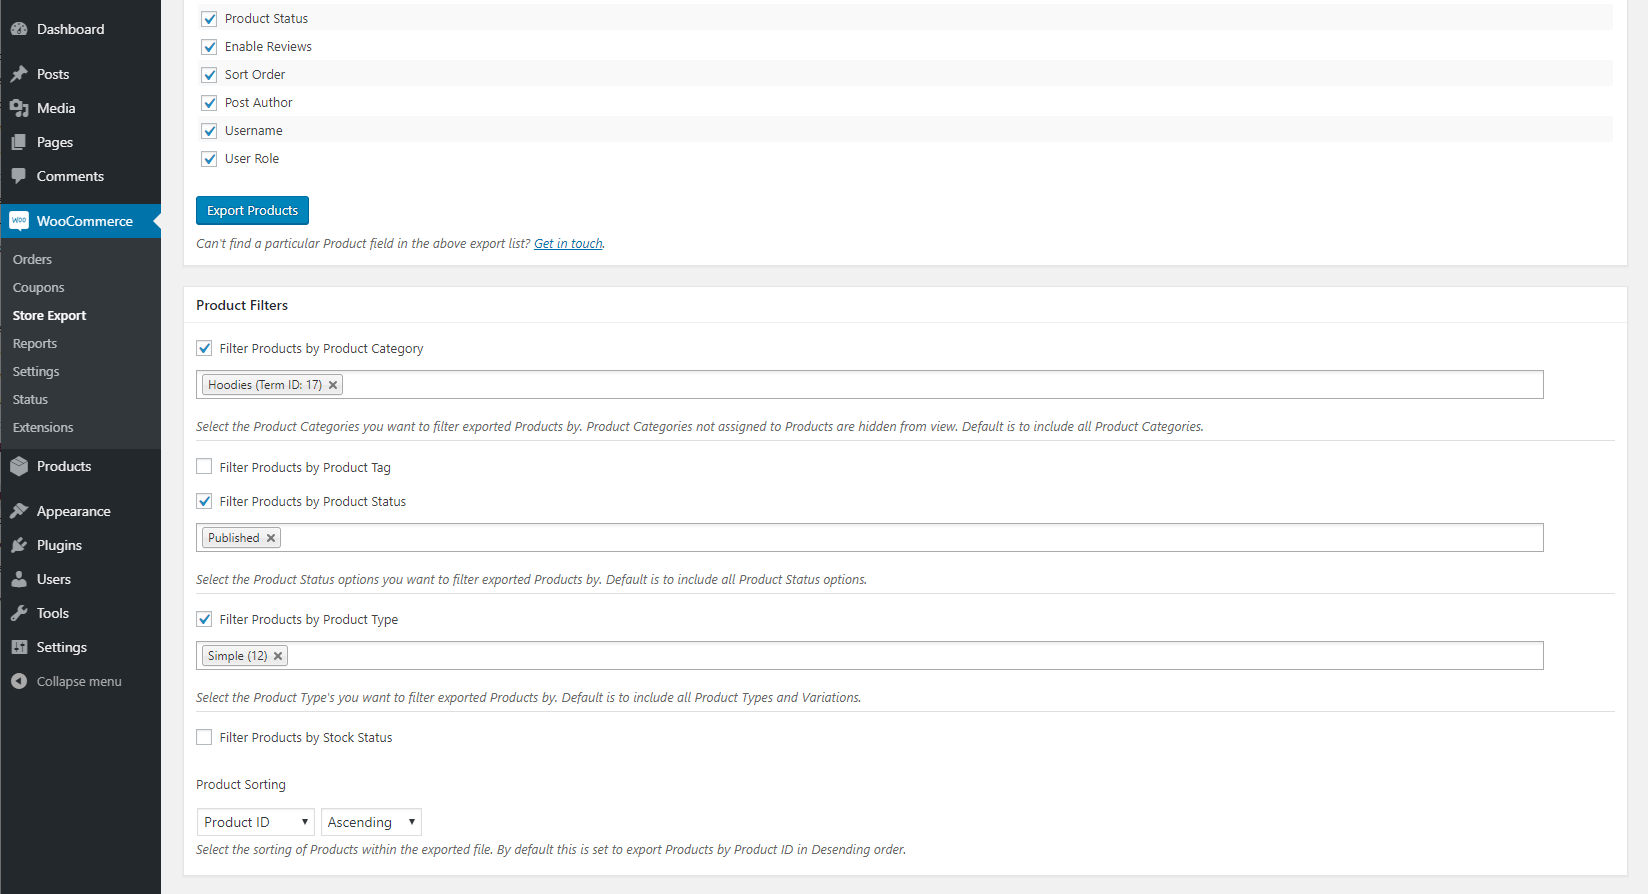 Each dataset (e.g. Products, Orders, etc.) include filter options to filter by date, status, type, customer and more.